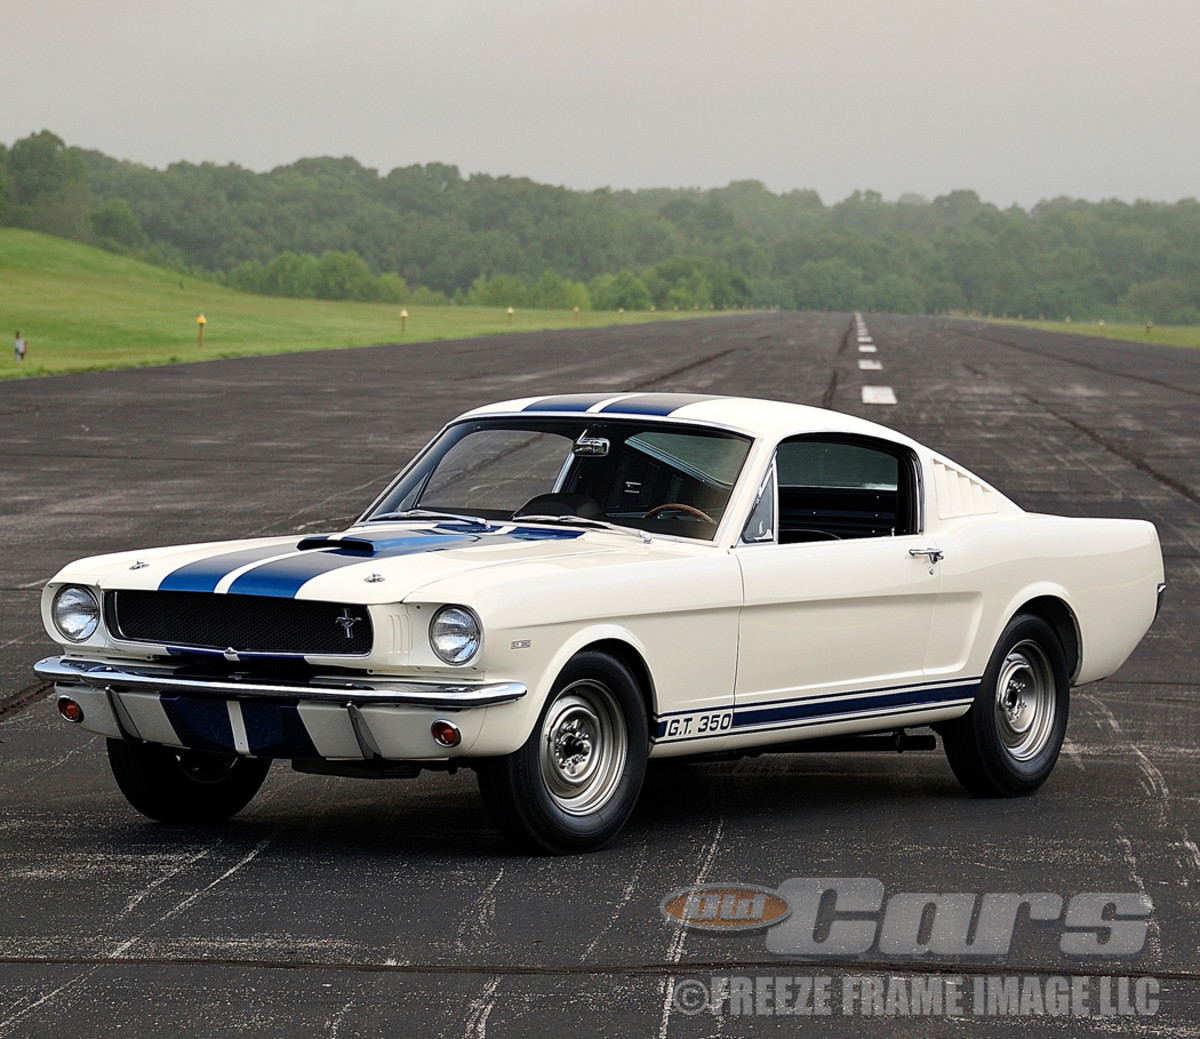 The historic first Shelby Mustang was re-restored as it was originally built — first as a 1965 Hi-Po fastback, then converted into a GT350 per Shelby American in 1964.